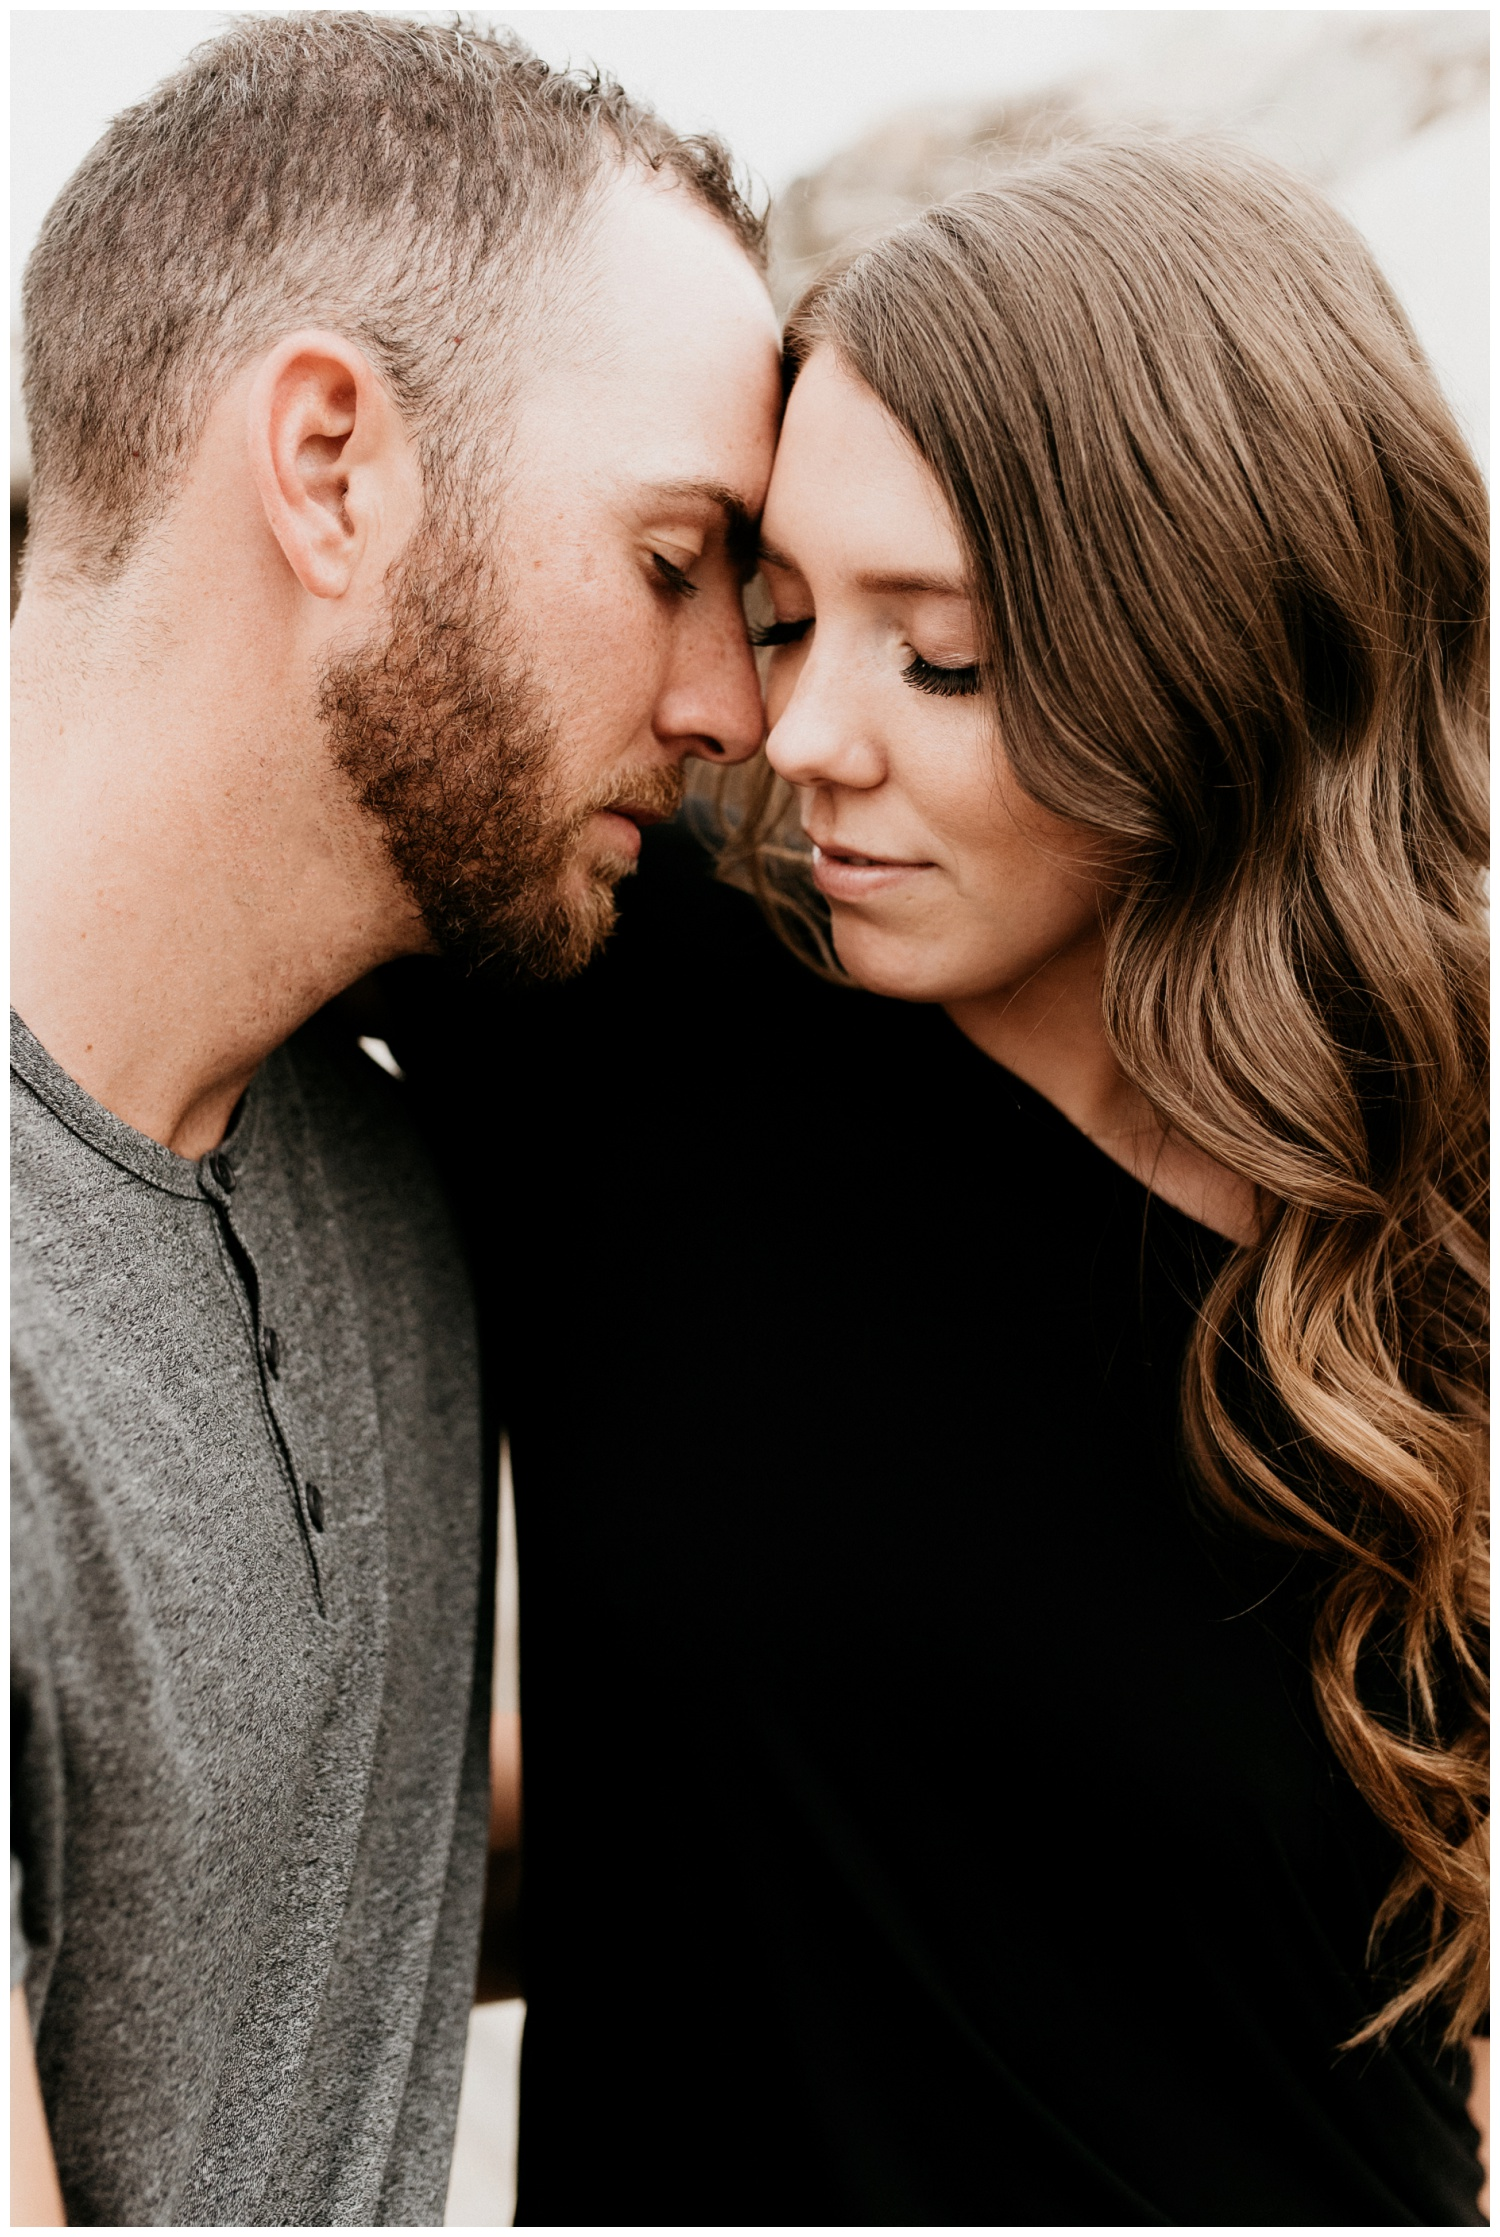 South Mountain Engagement Session Phoenix Wedding Photographer Ashtyn Nicole Photo 06